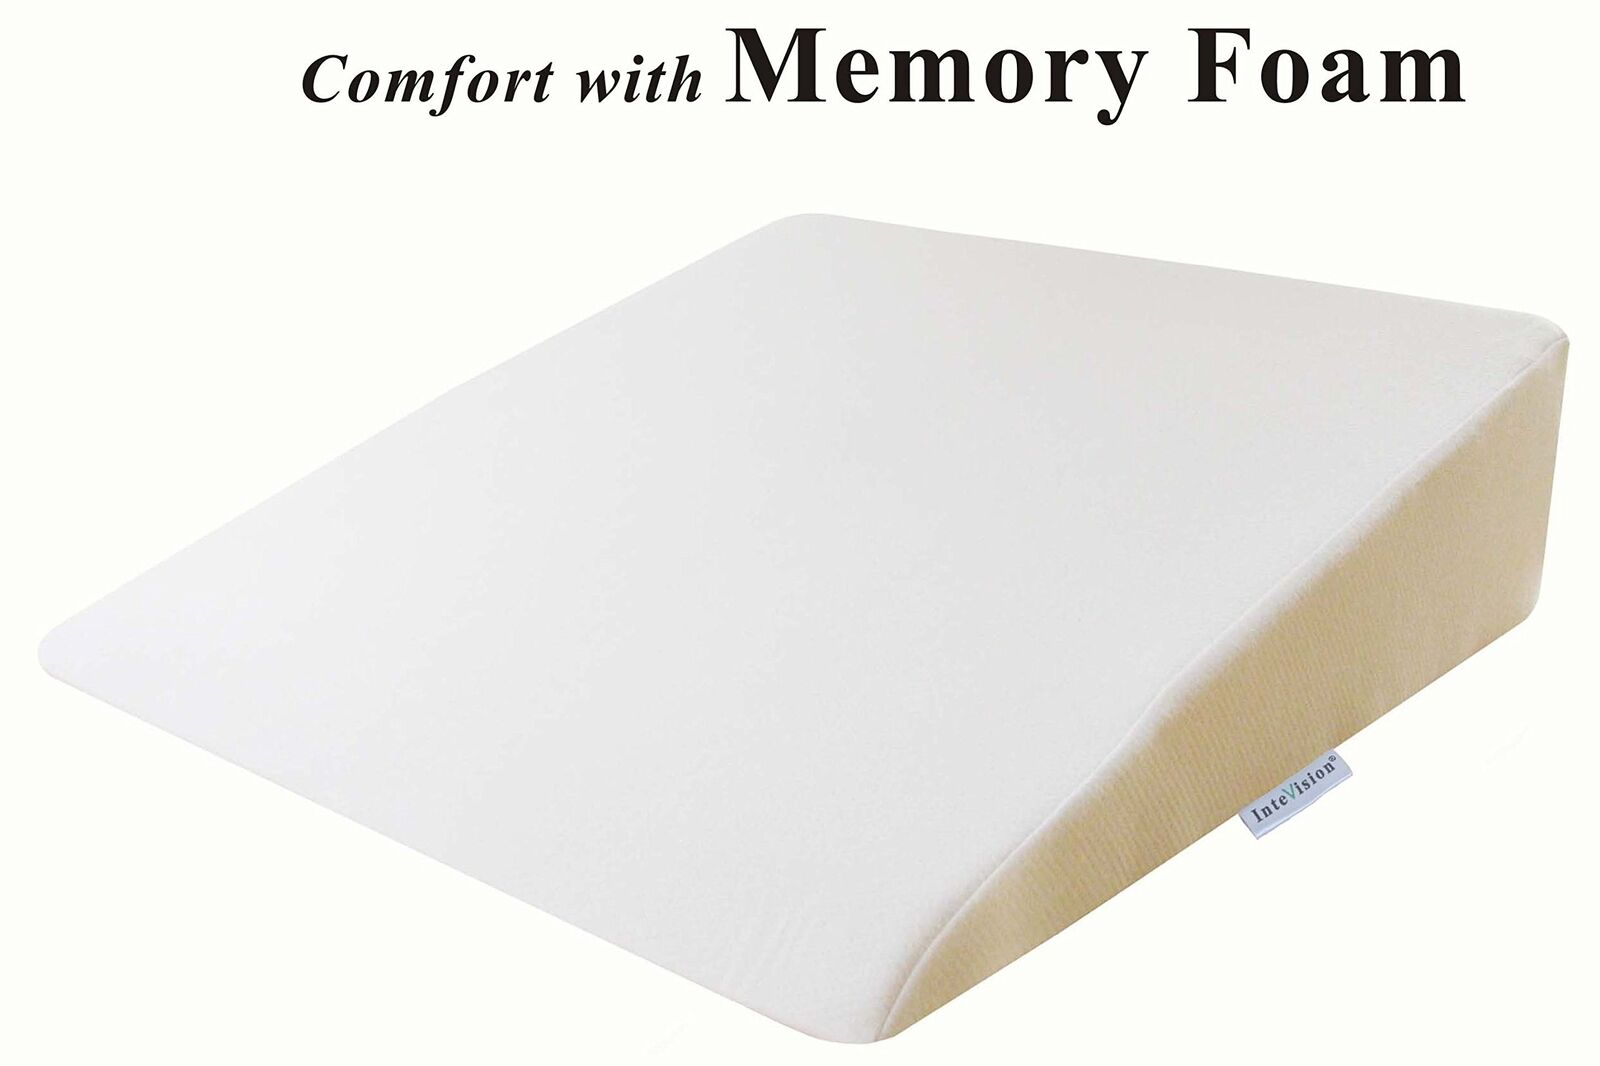 InteVision Foam Wedge Bed Pillow (26  x 25  x 7.5 ) with High Quality, Removable